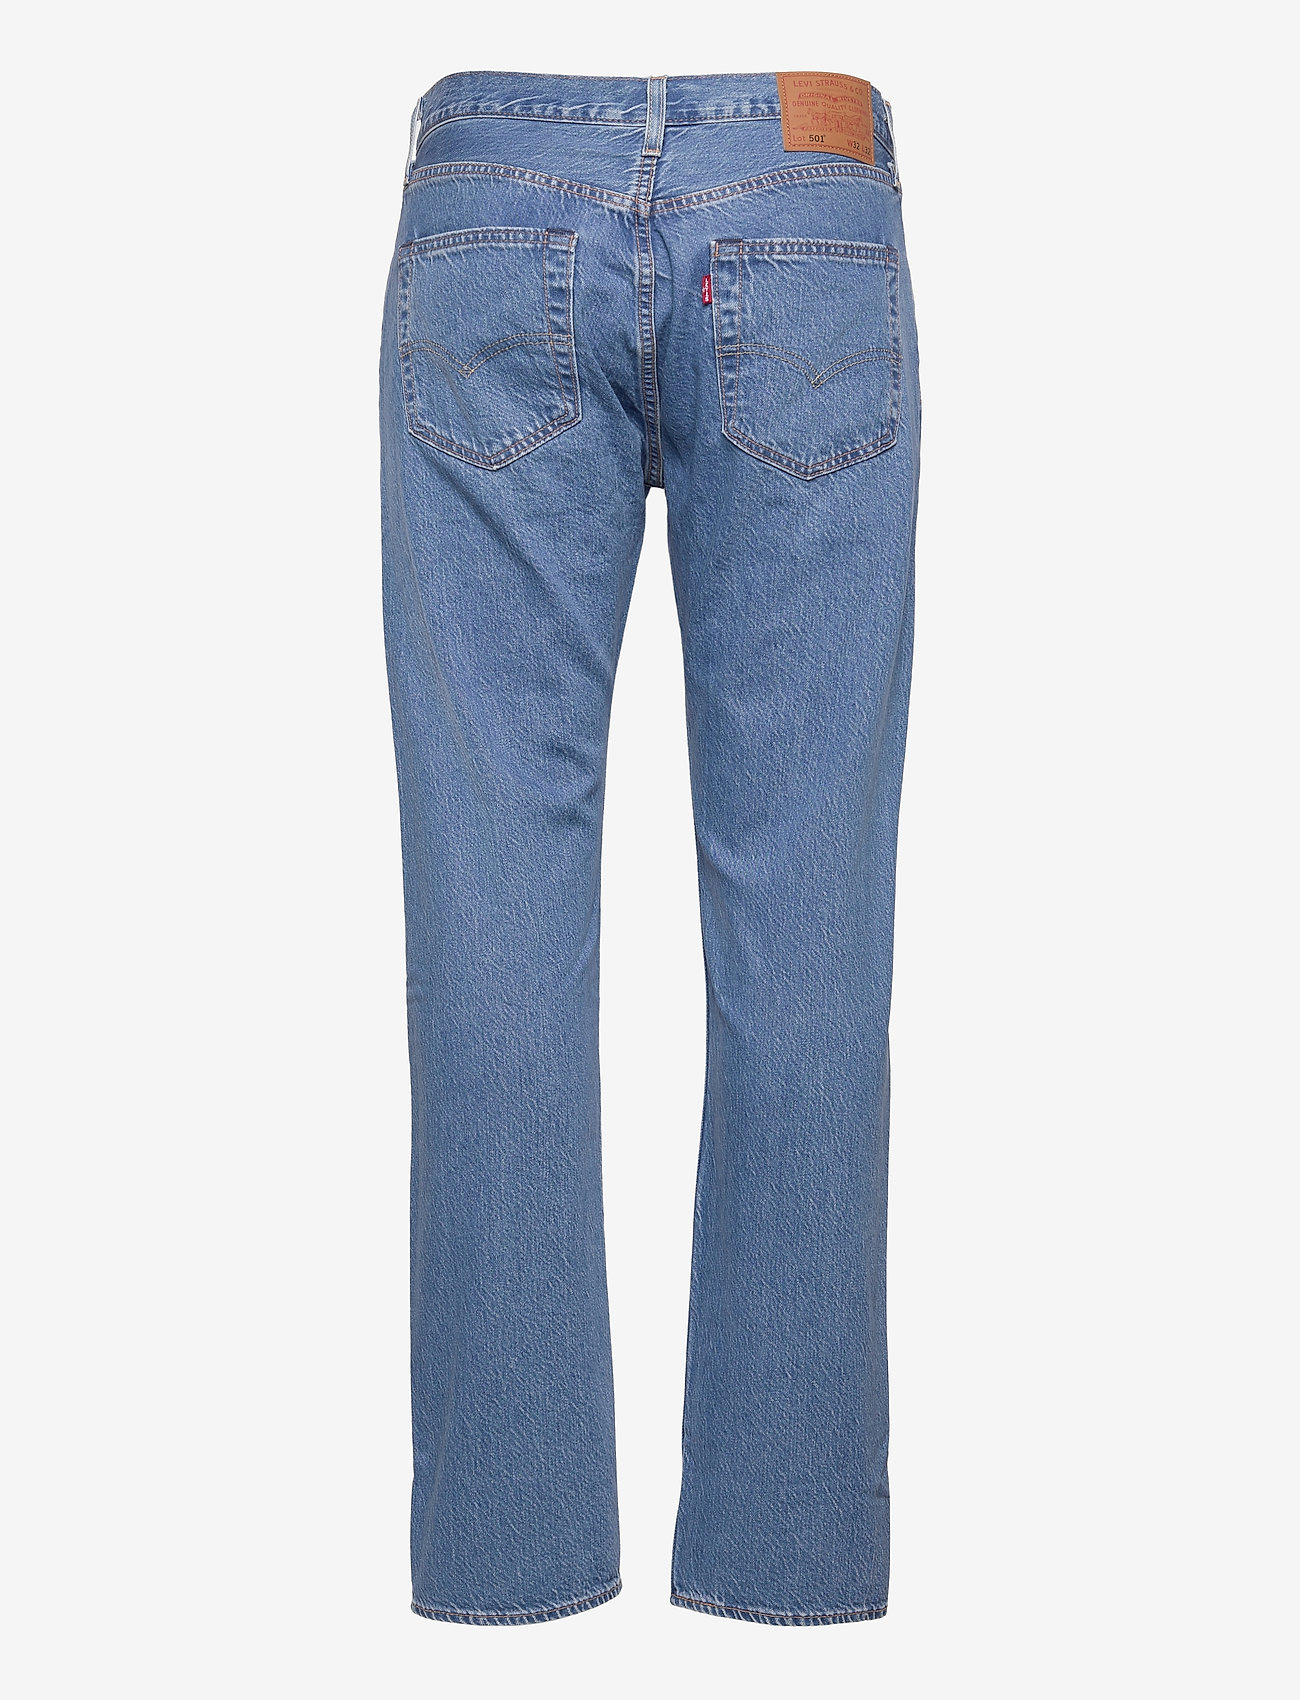 LEVI´S Men - 501 LEVISORIGINAL CANYON LIGHT - relaxed jeans - light indigo - flat finis - 1